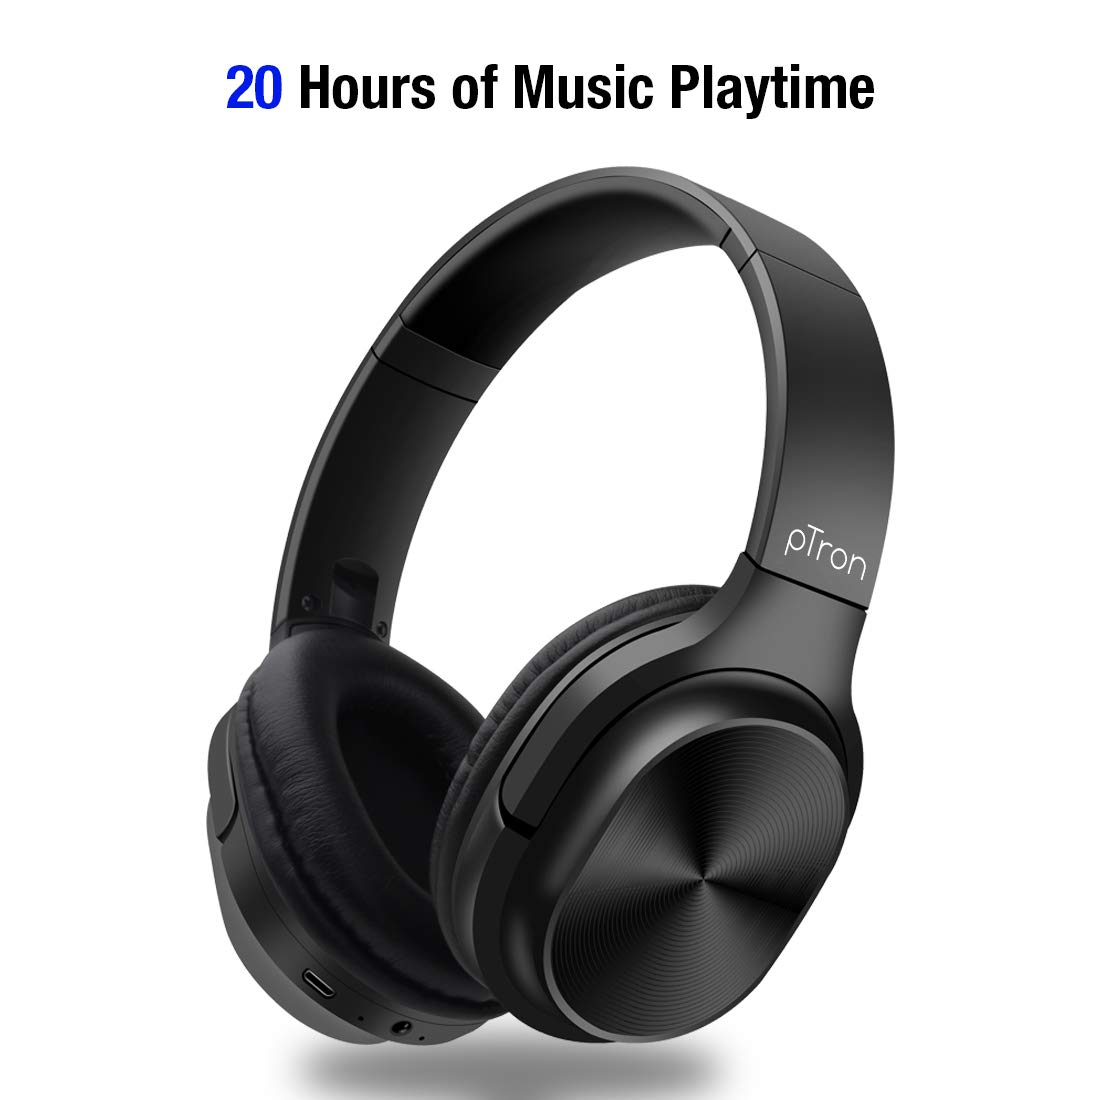 pTron Studio Pro Soundster Over The Ear Wireless Bluetooth Headphones with Mic - (Black)